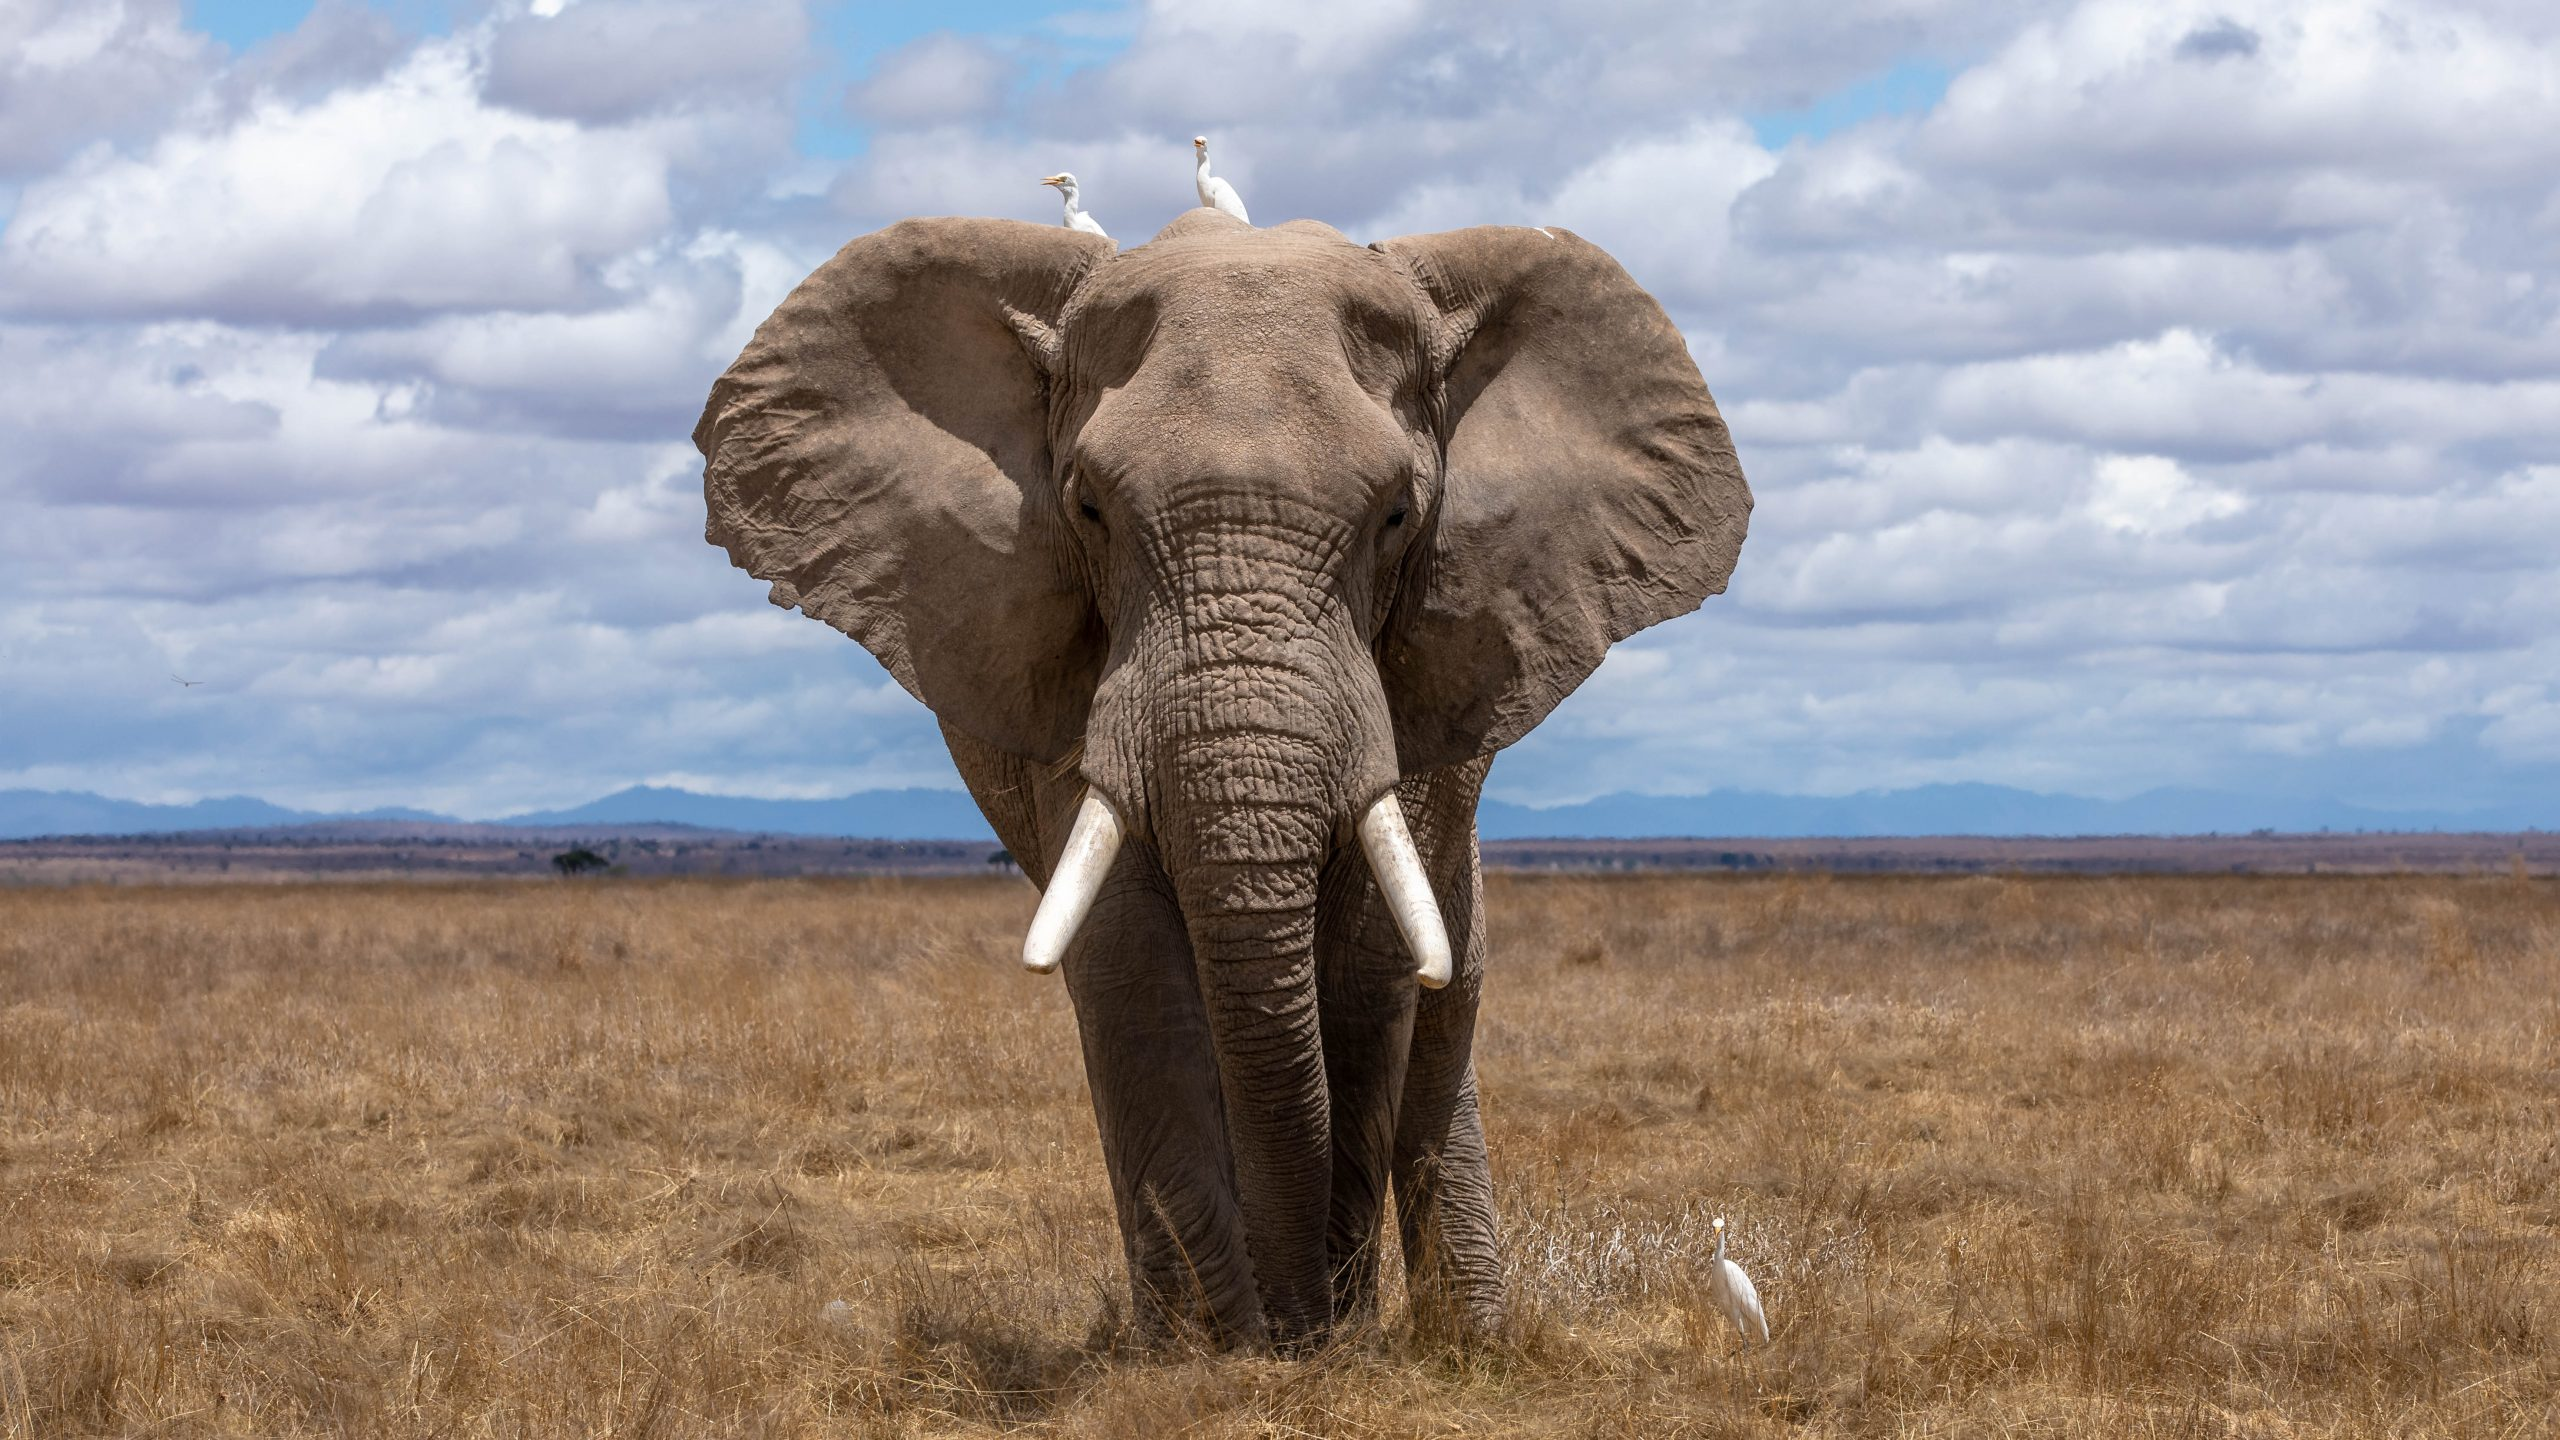 New Episode – Size of an Elephant